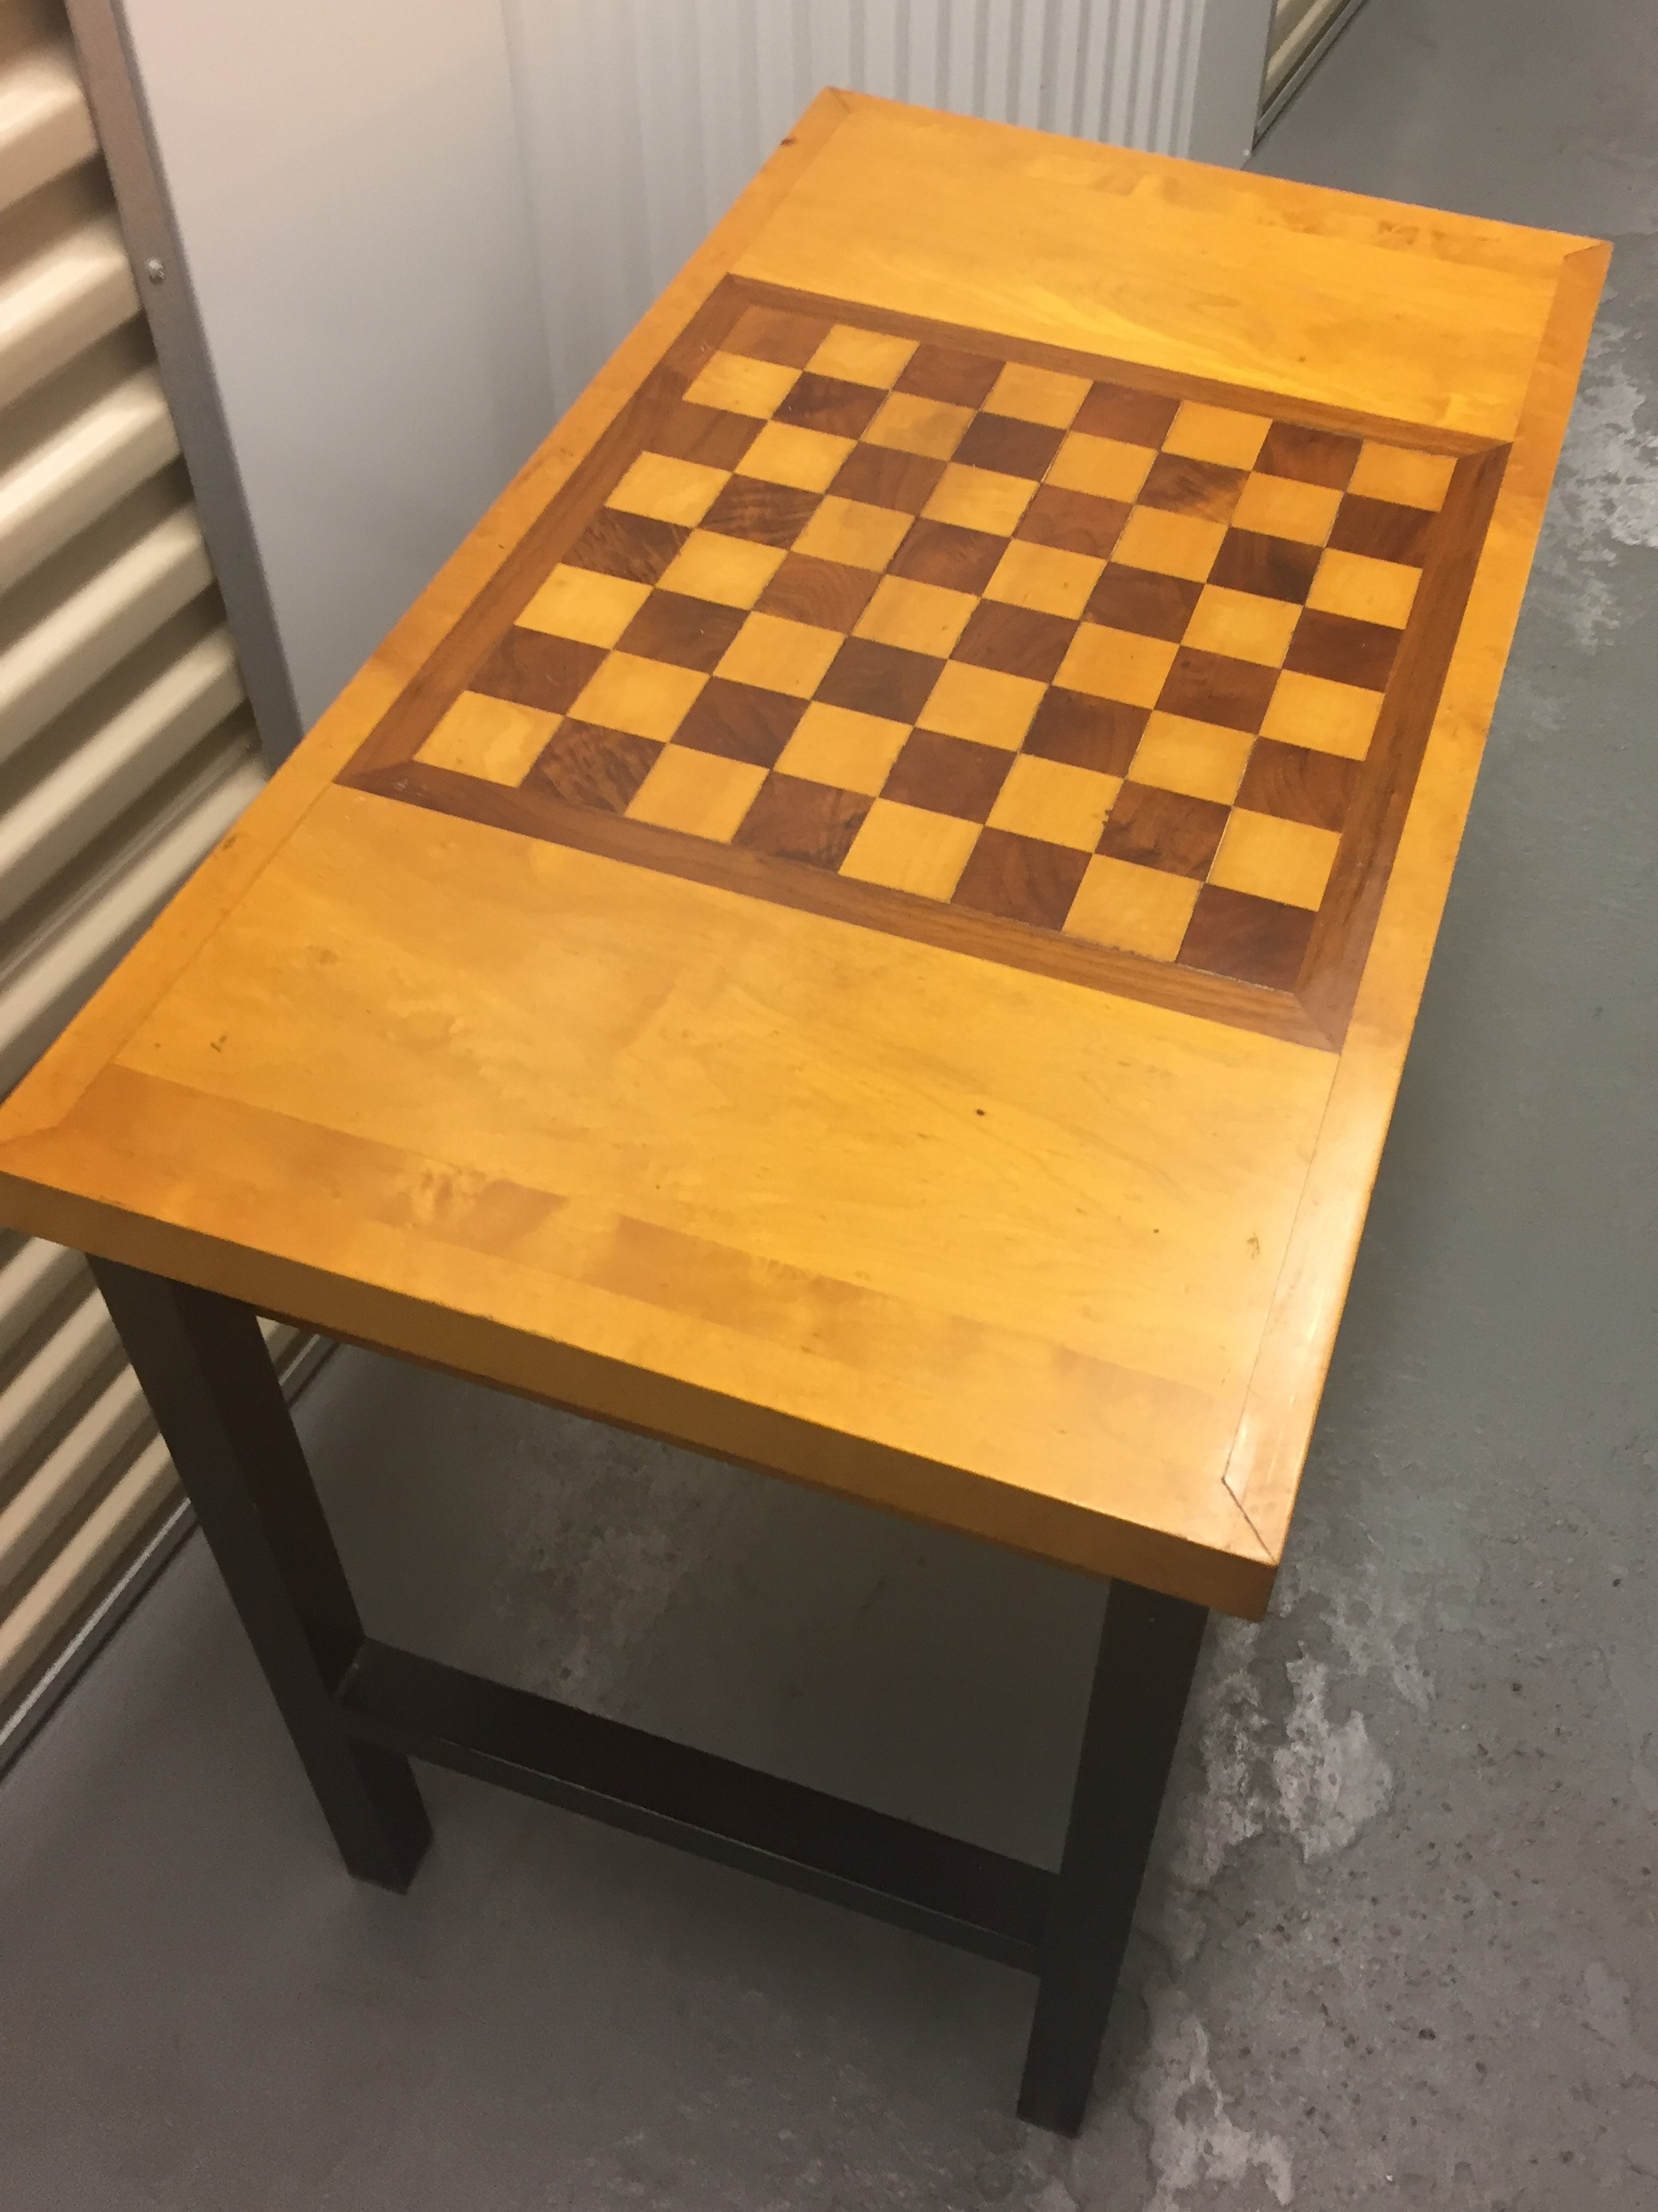 Inlaid squares, metal legs, drawers for pieces. Other than a tiny cigarette burn (the spot to the left of the corner at the top of the board), the table is in great shape!